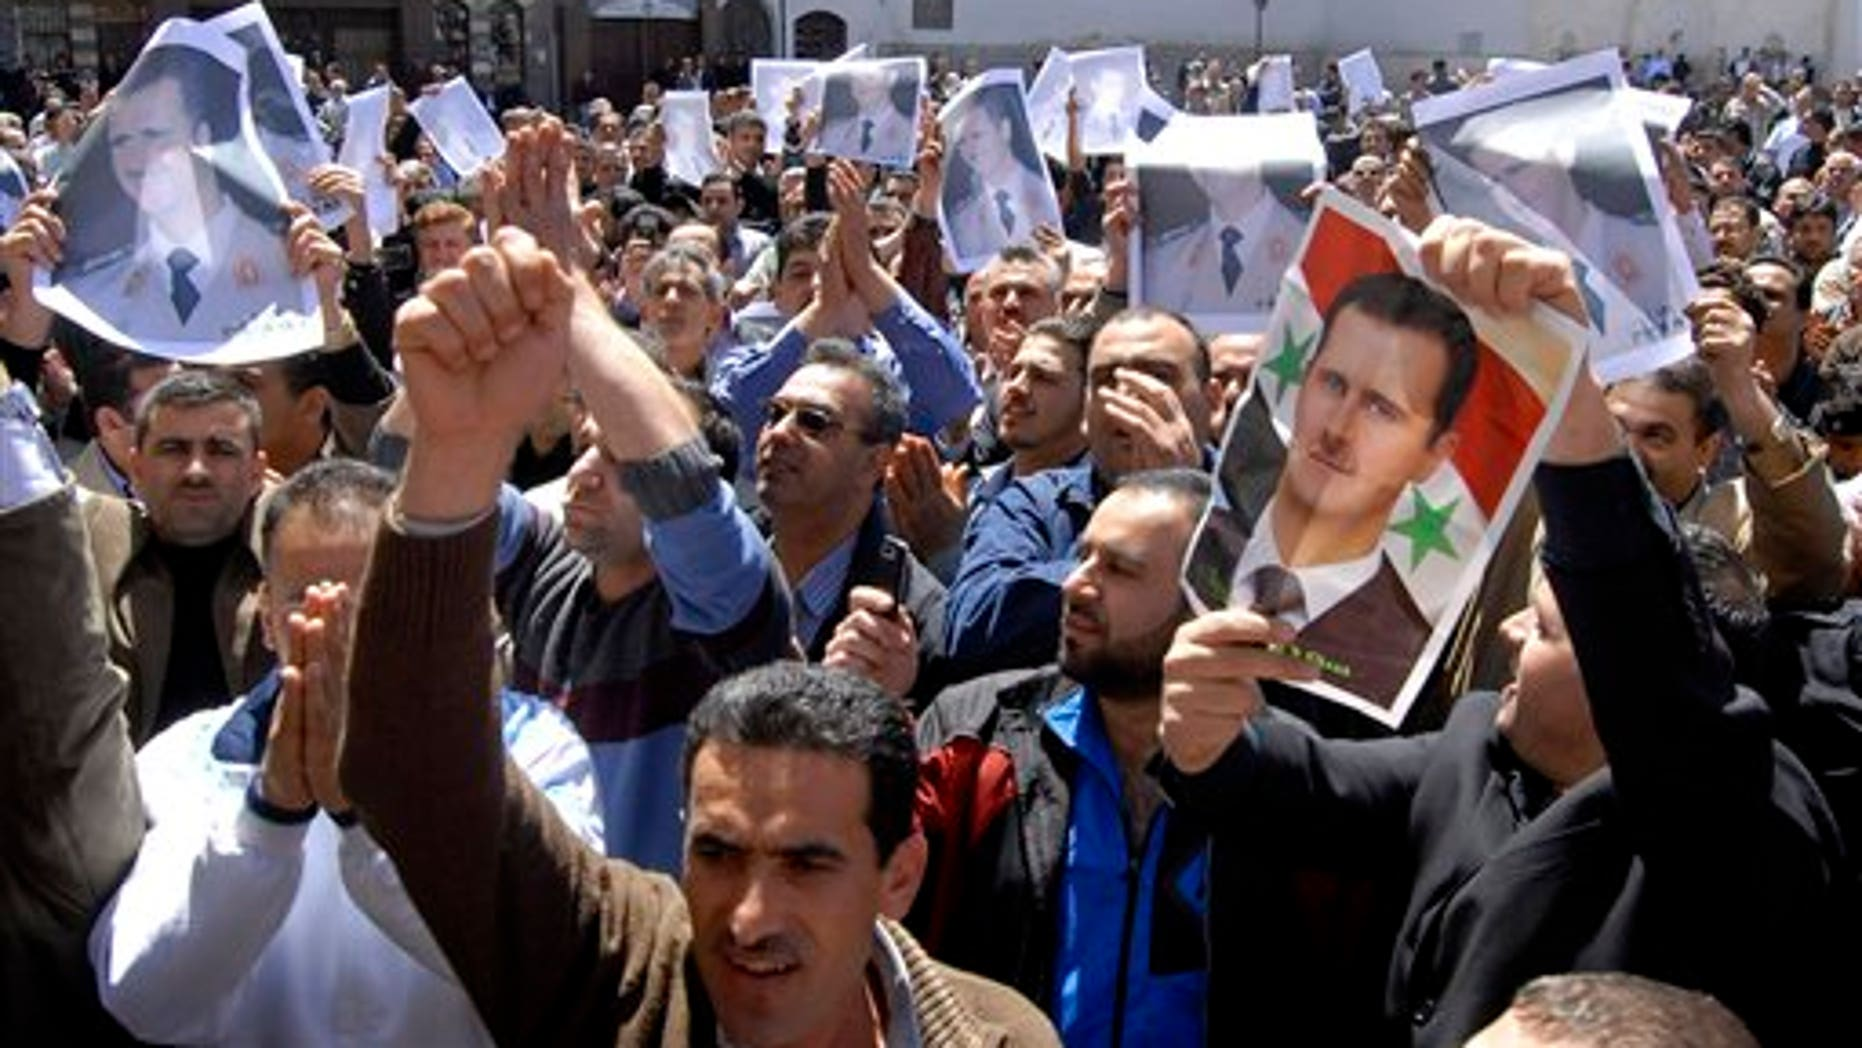 April 15: Syrian pro-government protesters carry pictures of Syrian President Bashar Assad as they shout slogans after Friday prayers outside the Omayyad Mosque in Damascus, Syria. (AP)